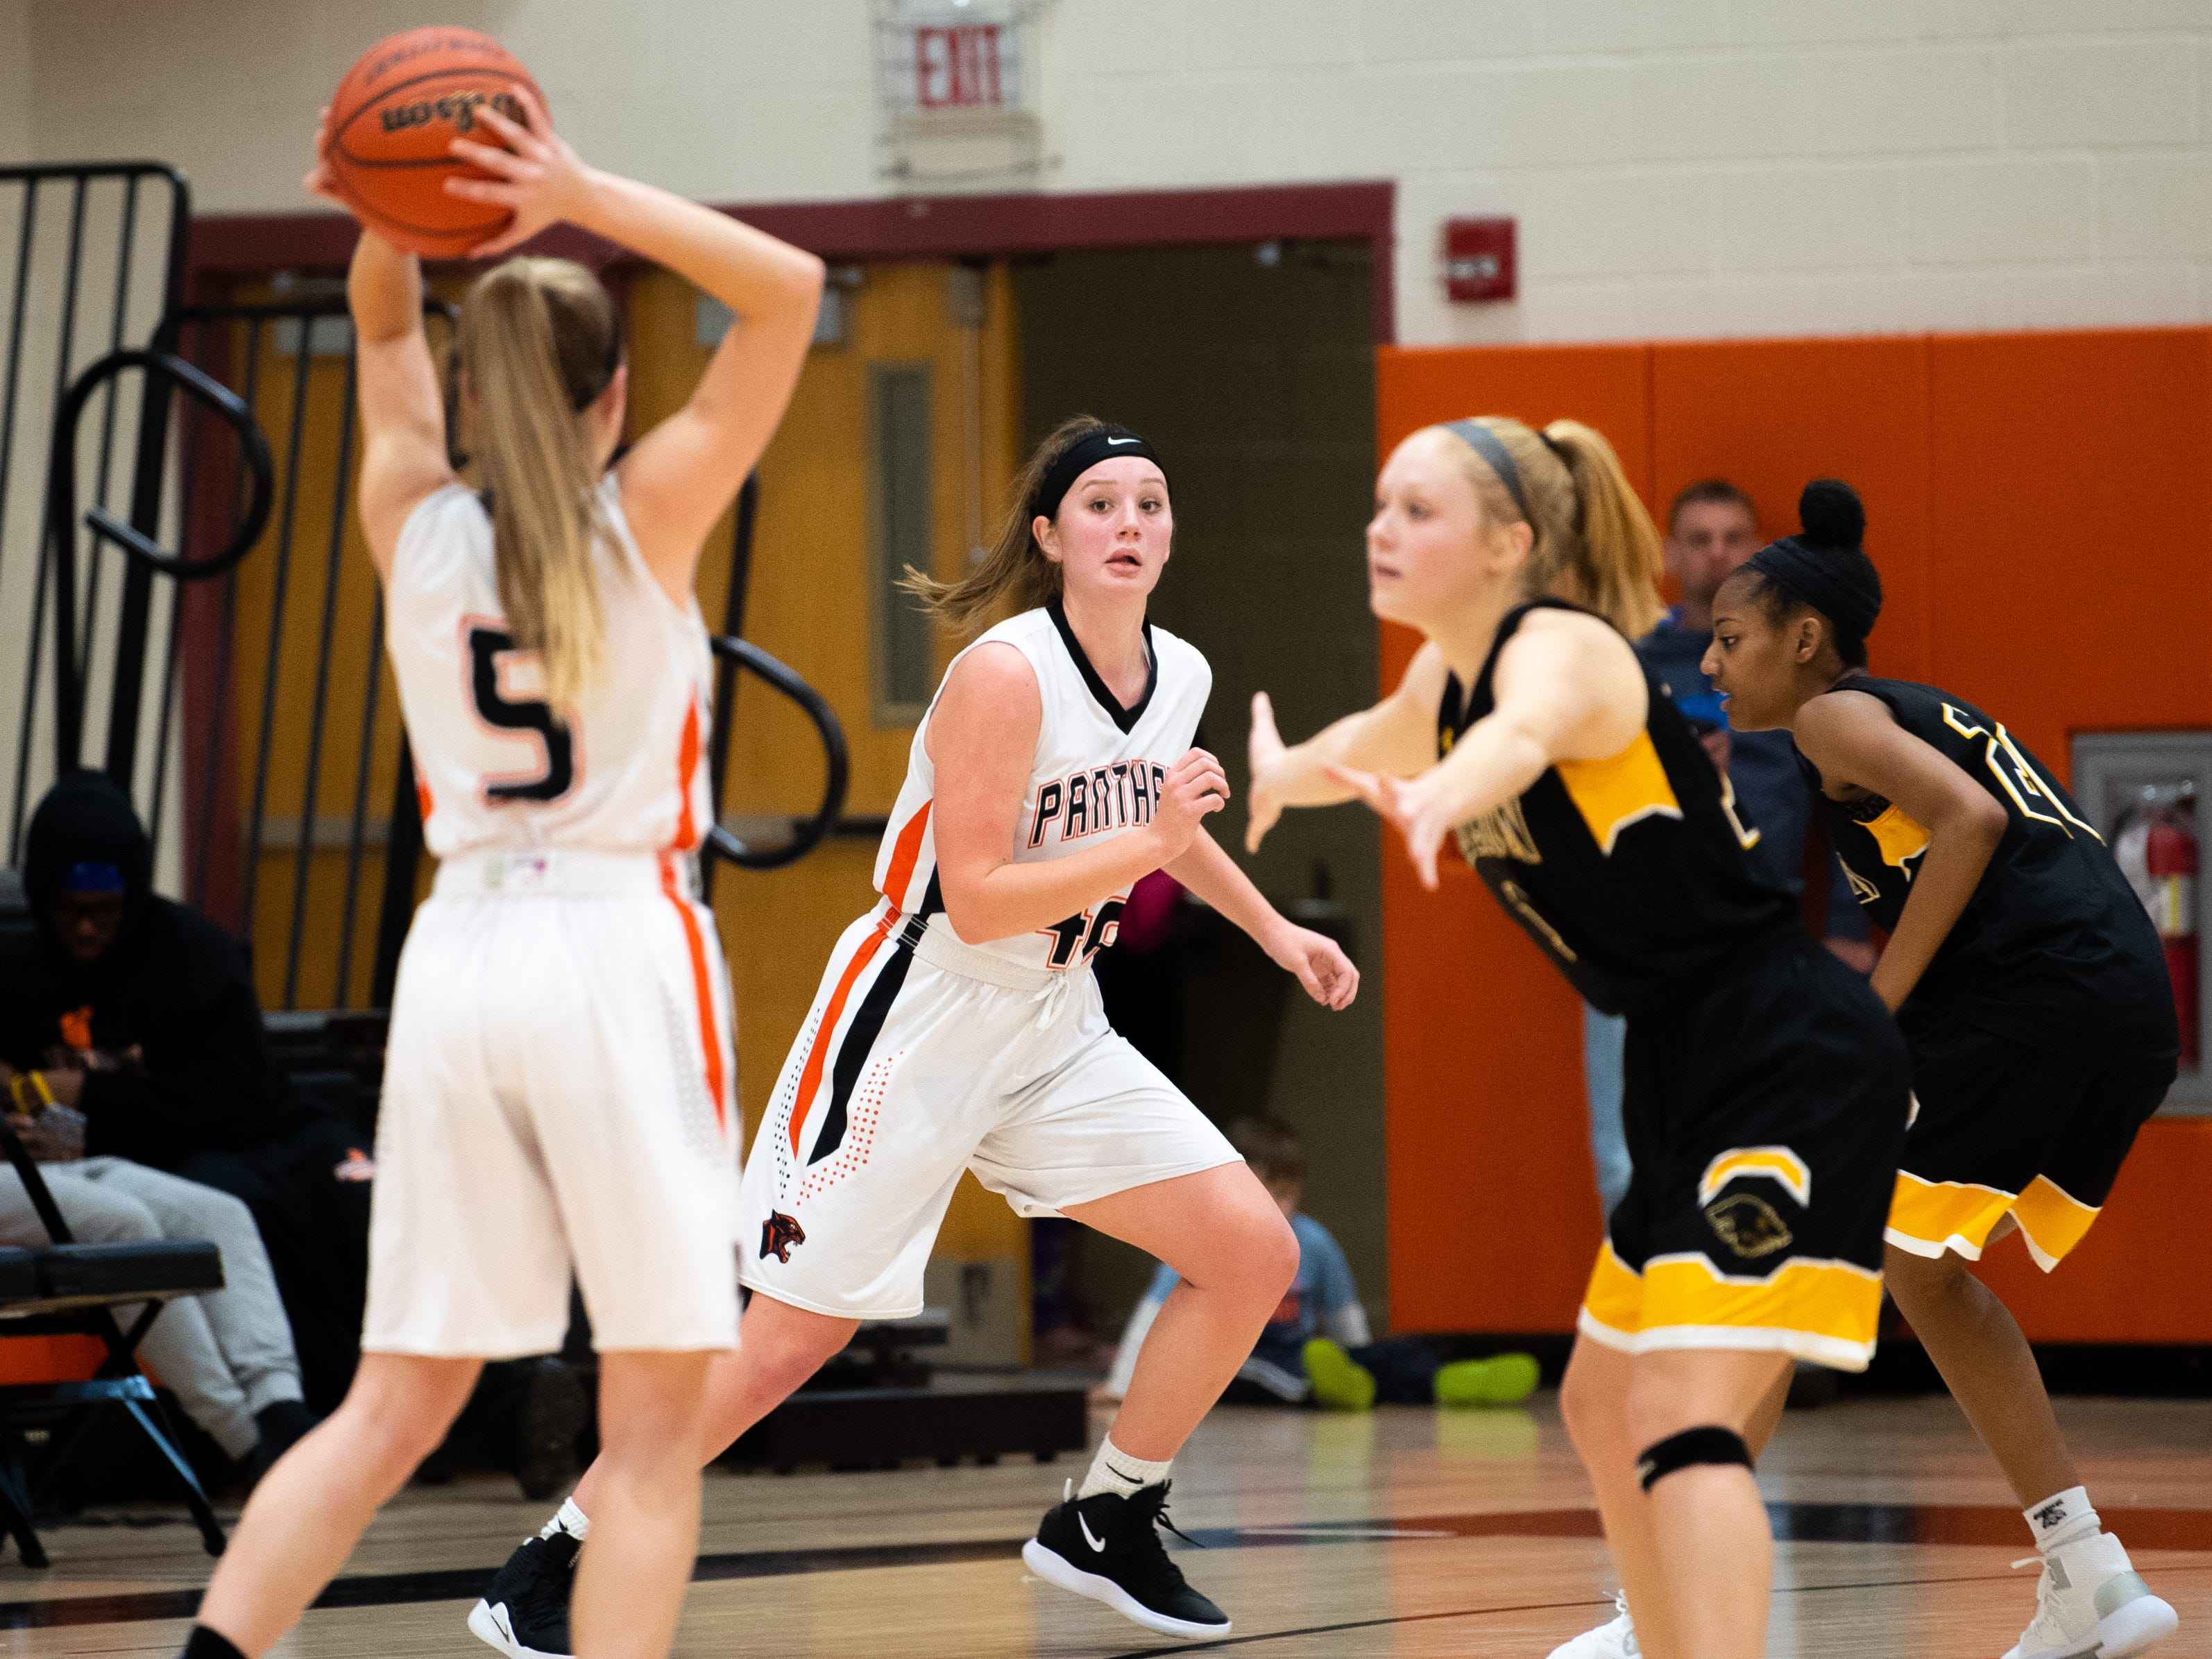 Emily Prowell (42) cuts to the basket during the girls' basketball game between Central York and Red Lion at Central York, Tuesday, December 11, 2018. The Panthers defeated the Lions 40-38.